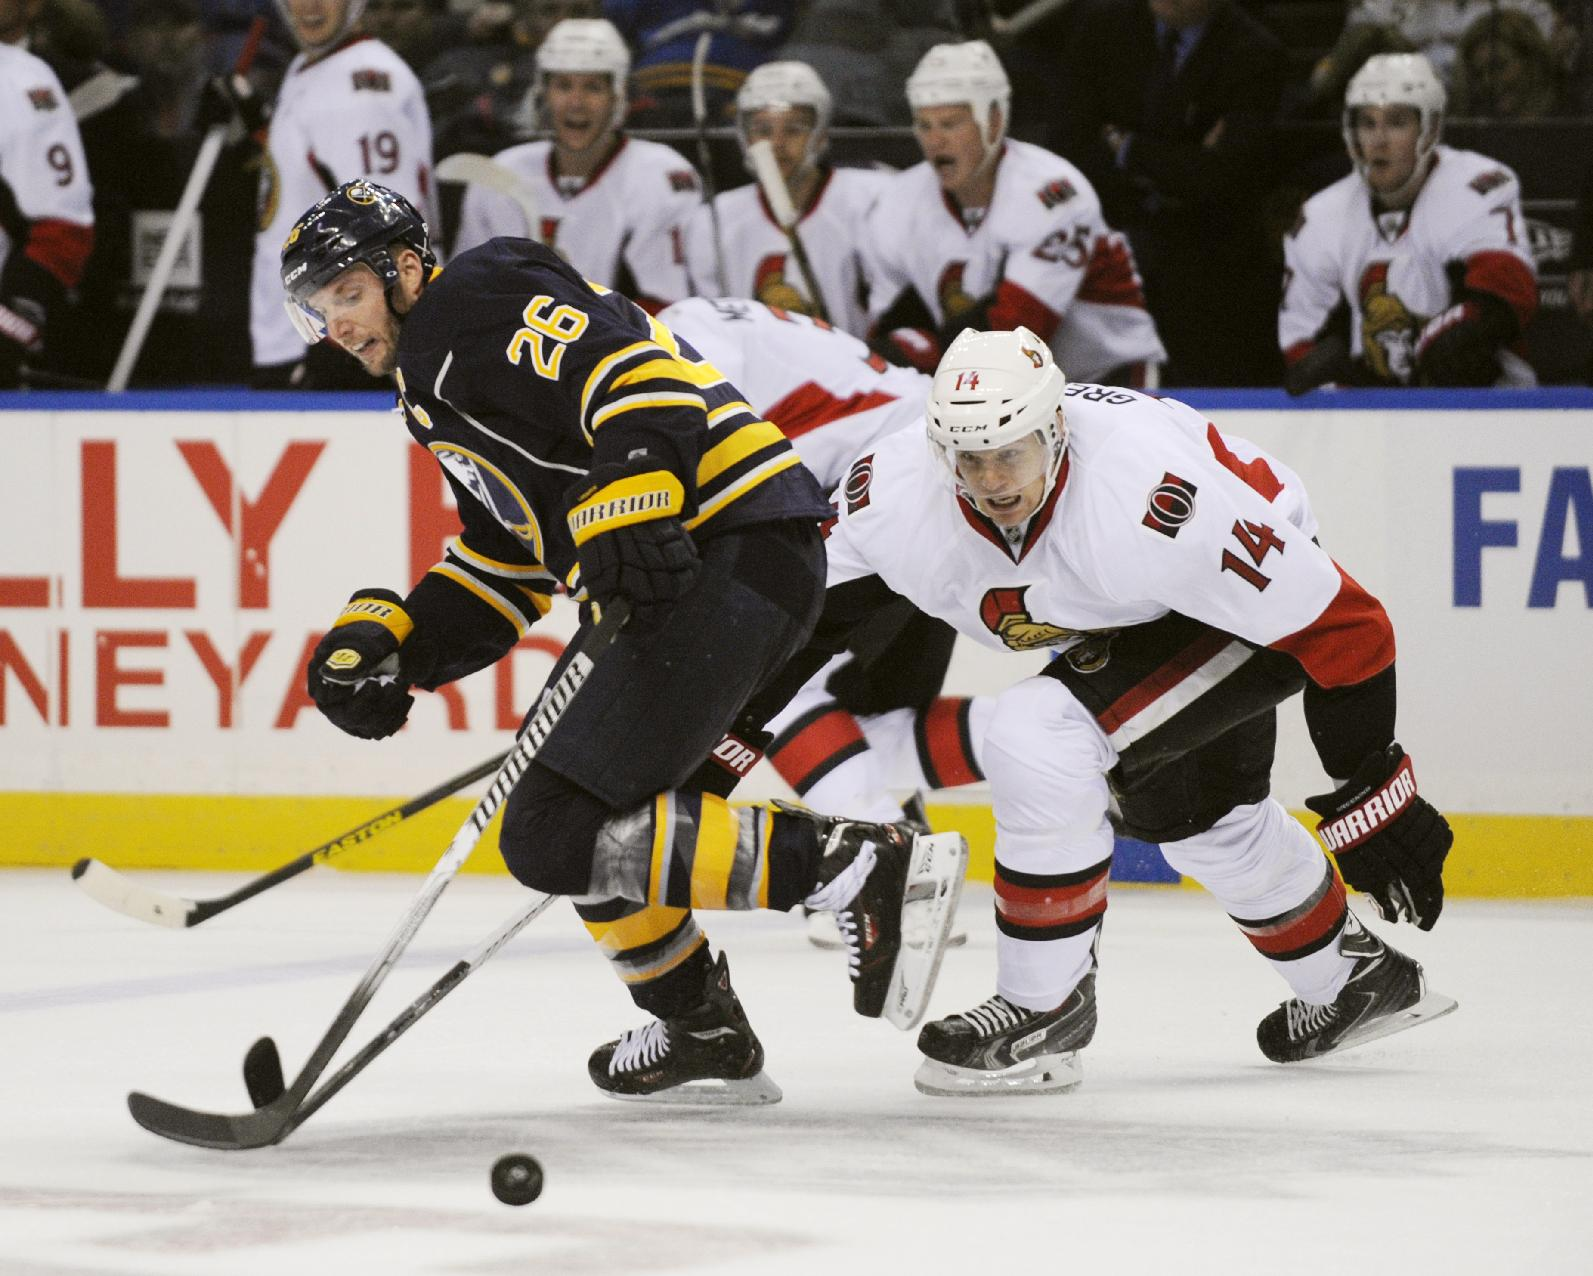 Buffalo Sabres'  Thomas Vanek (26), of Austria, gets stripped of the puck by Ottawa Senators' Colin Greening (14) during the second period of a NHL hockey game in Buffalo, N.Y., Friday, Oct. 4, 2013